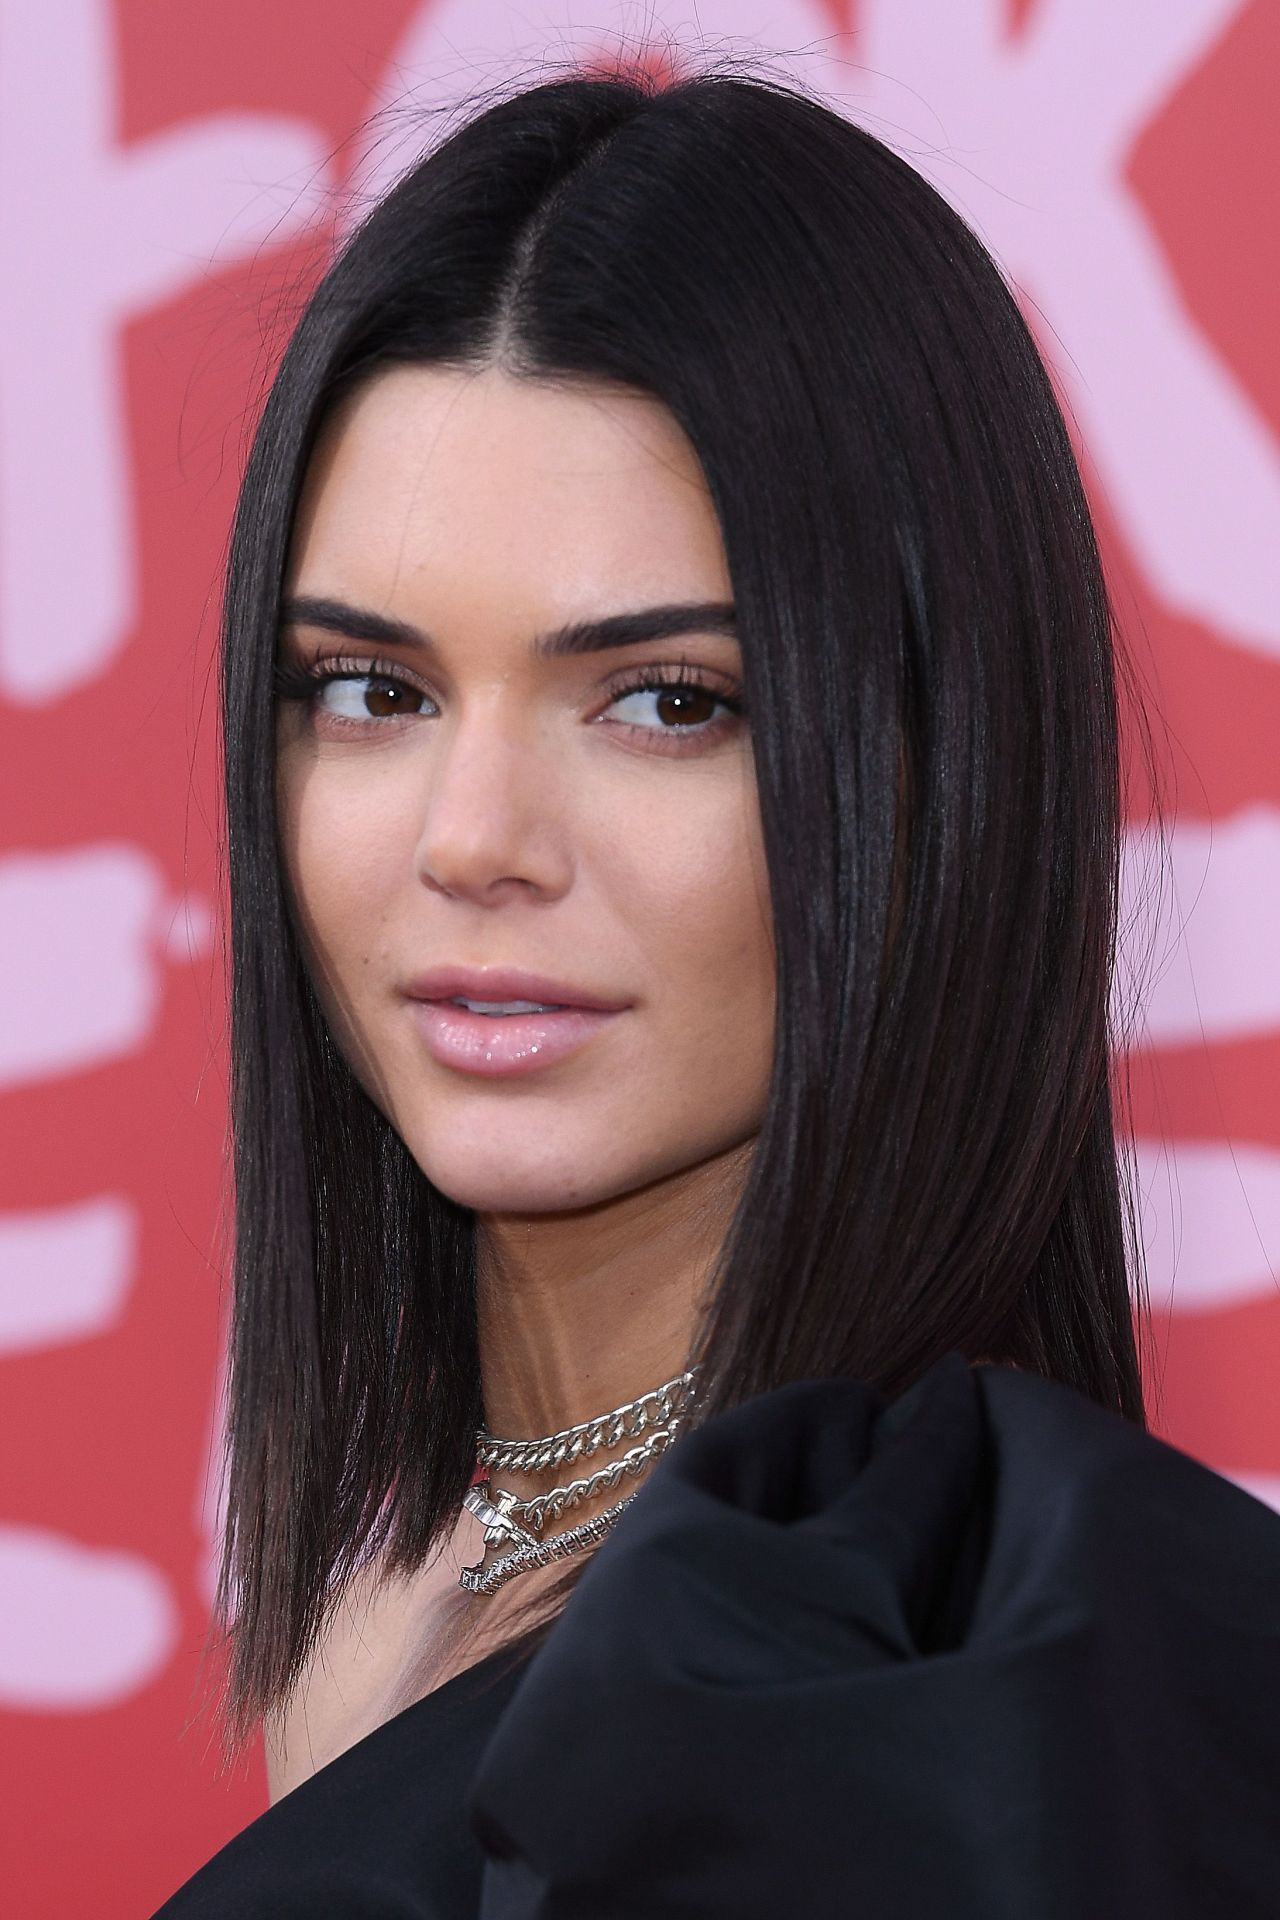 kendall jenner - photo #4